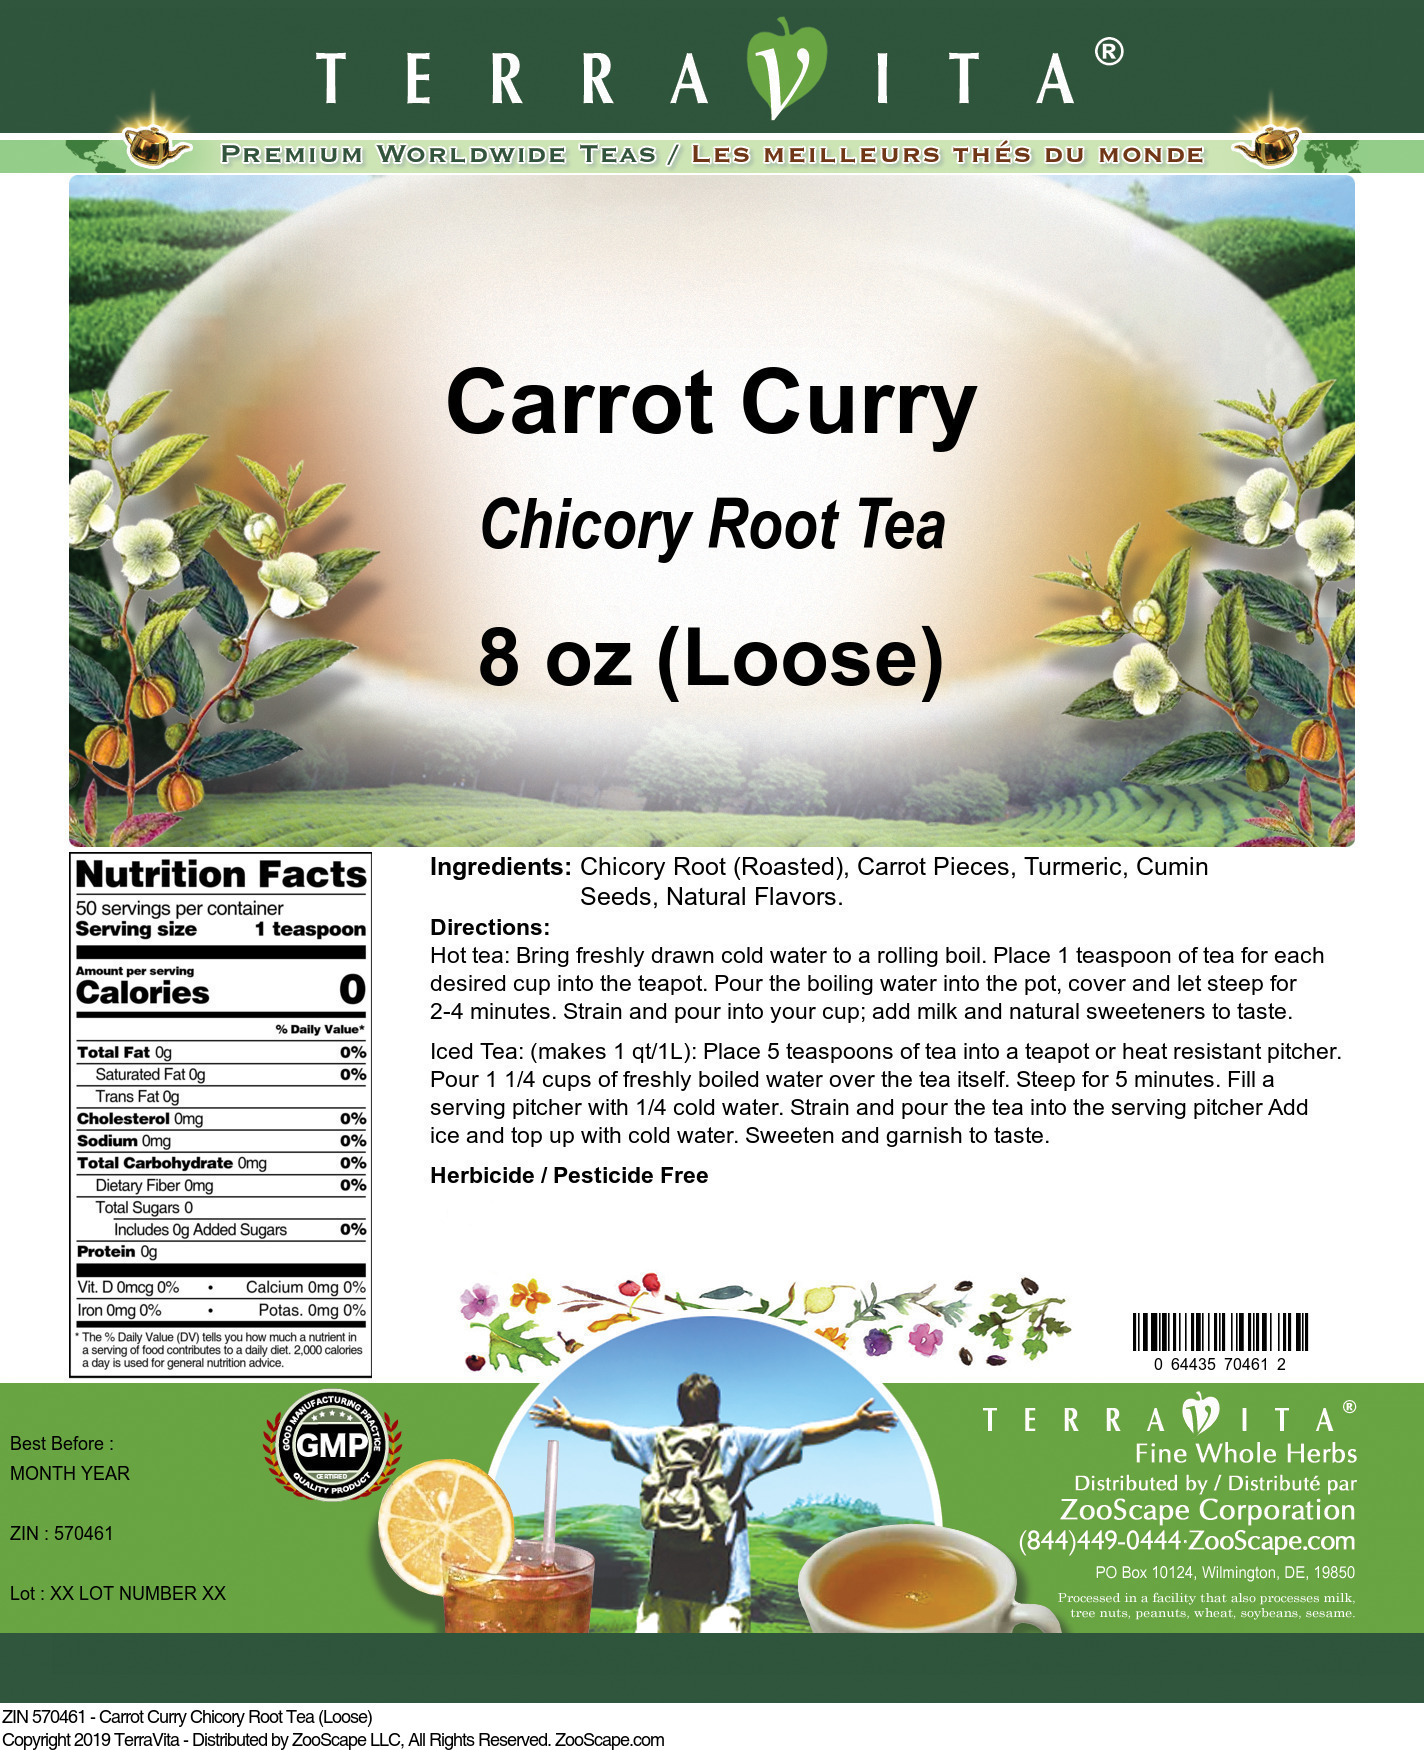 Carrot Curry Chicory Root Tea (Loose)